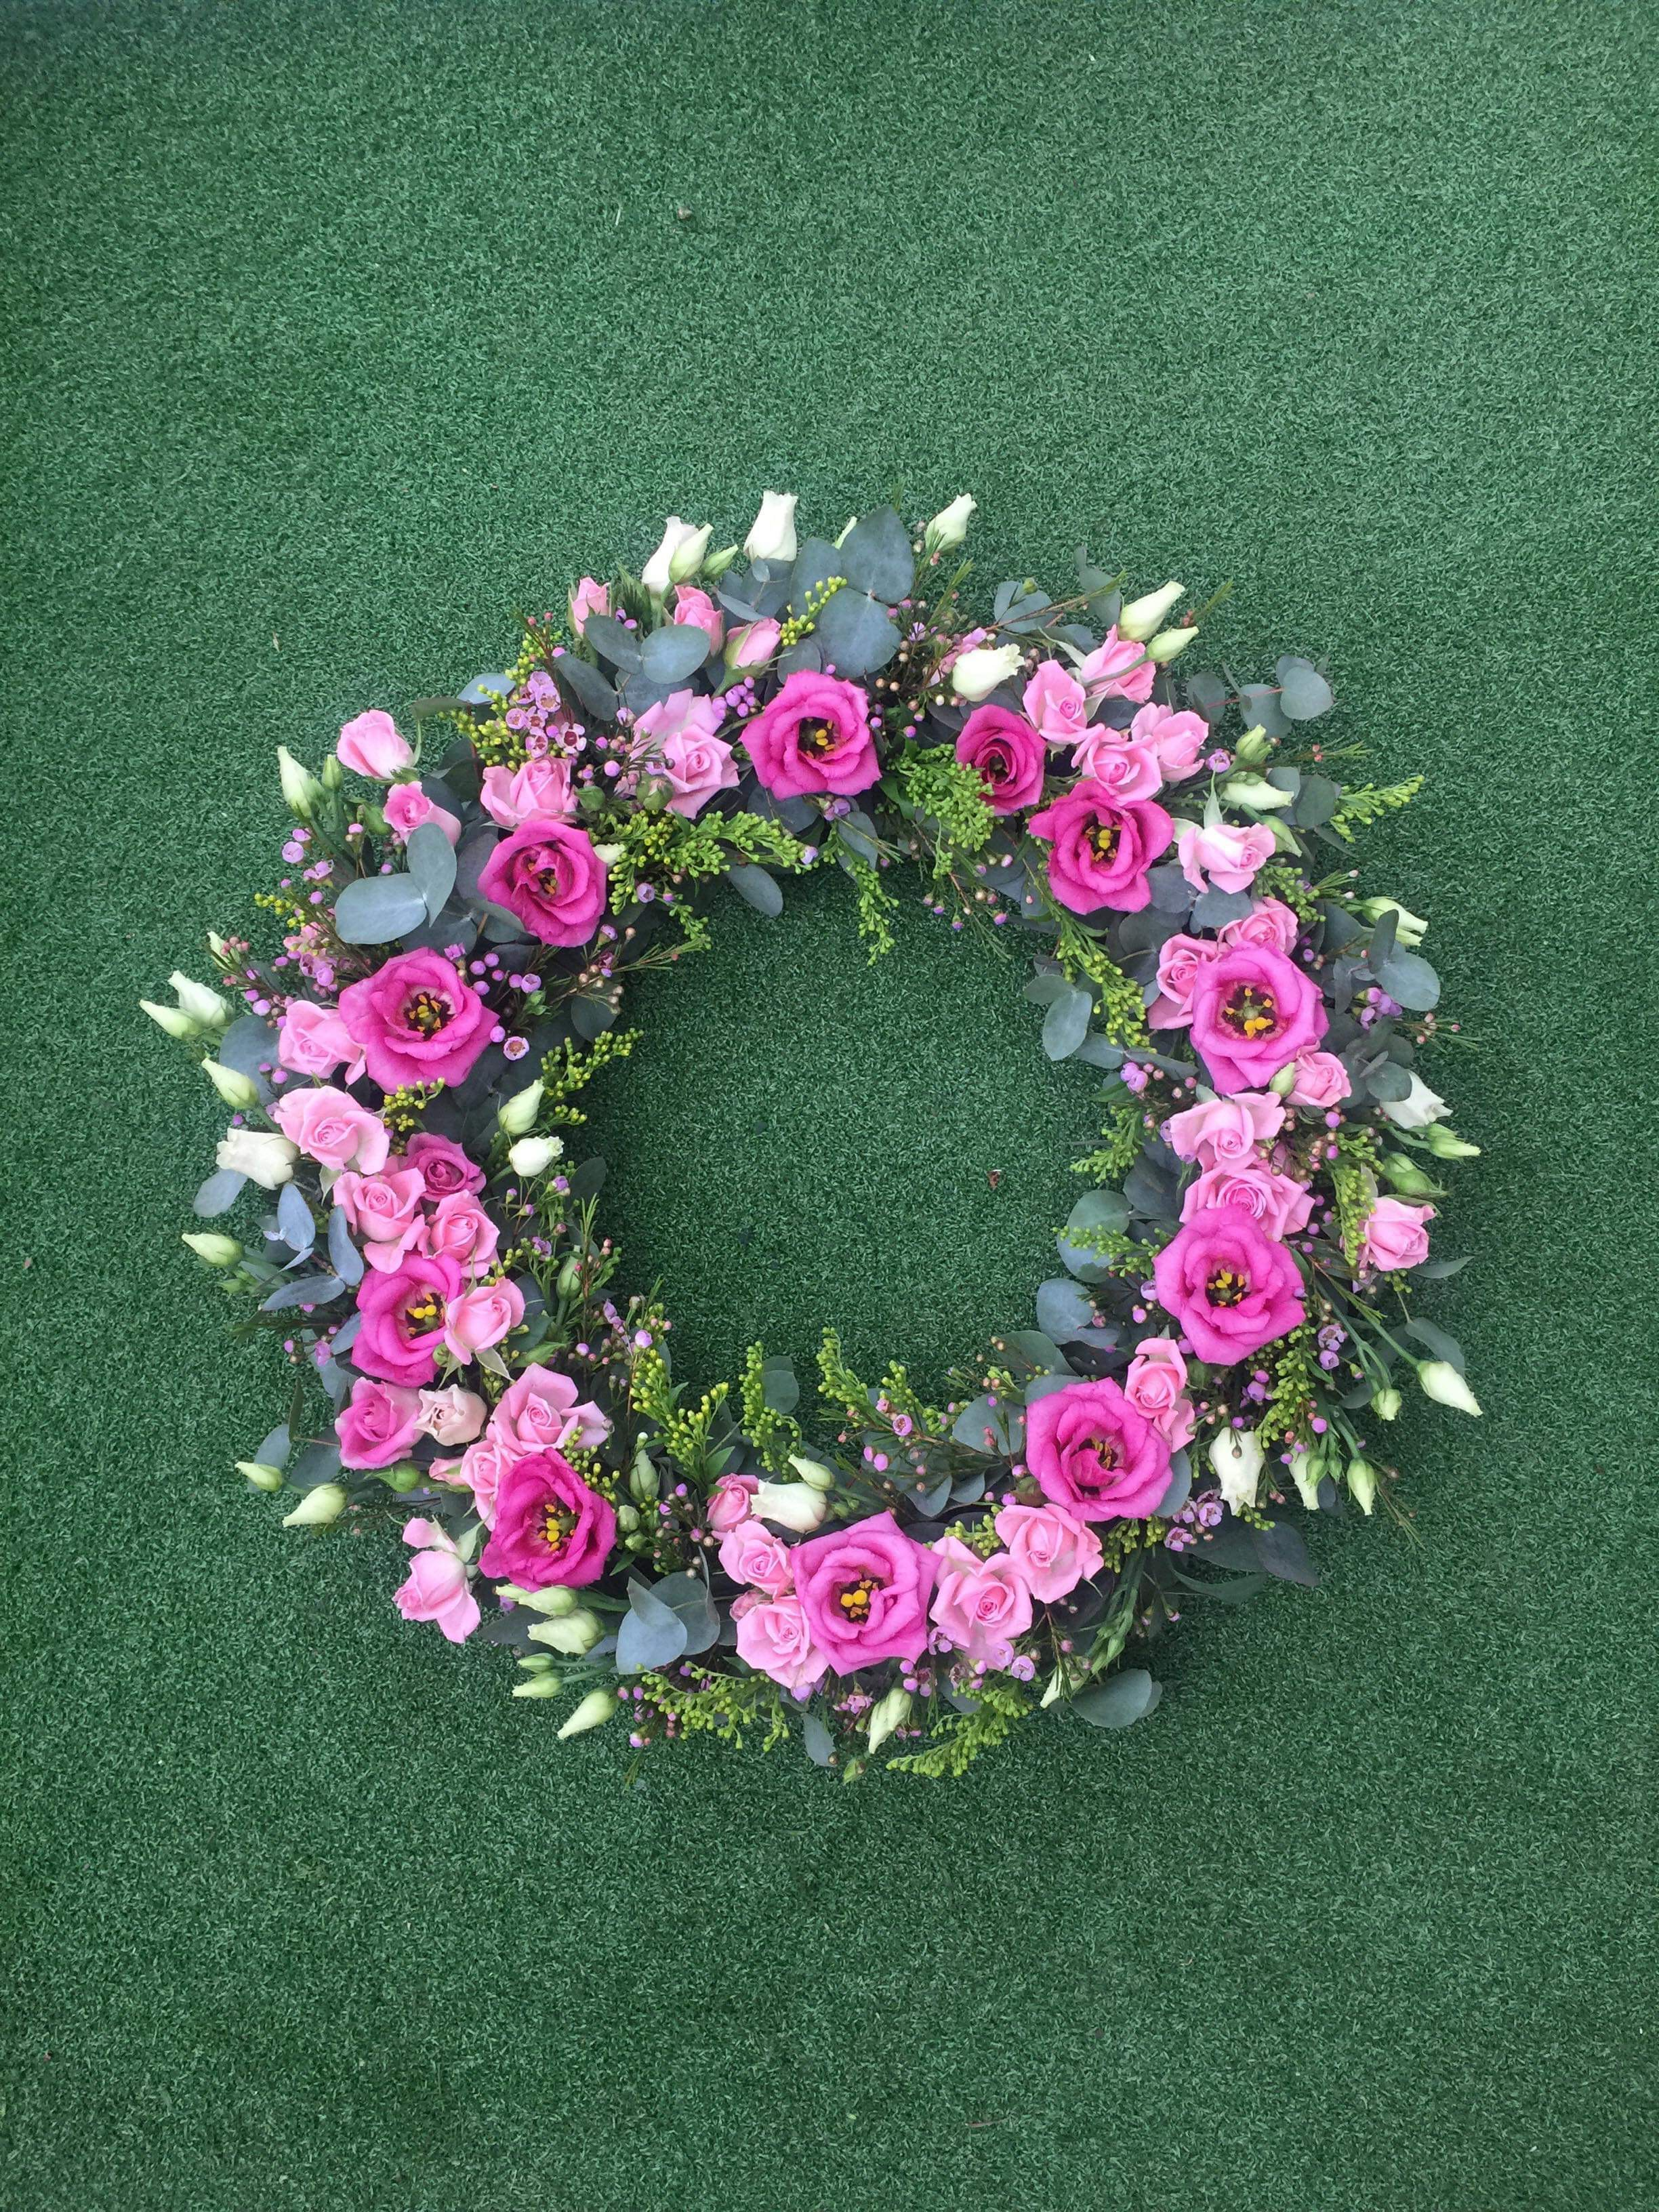 This very pretty wreath was made by Hannah, you can check her flower journey out on pinterest at @hannahpage77